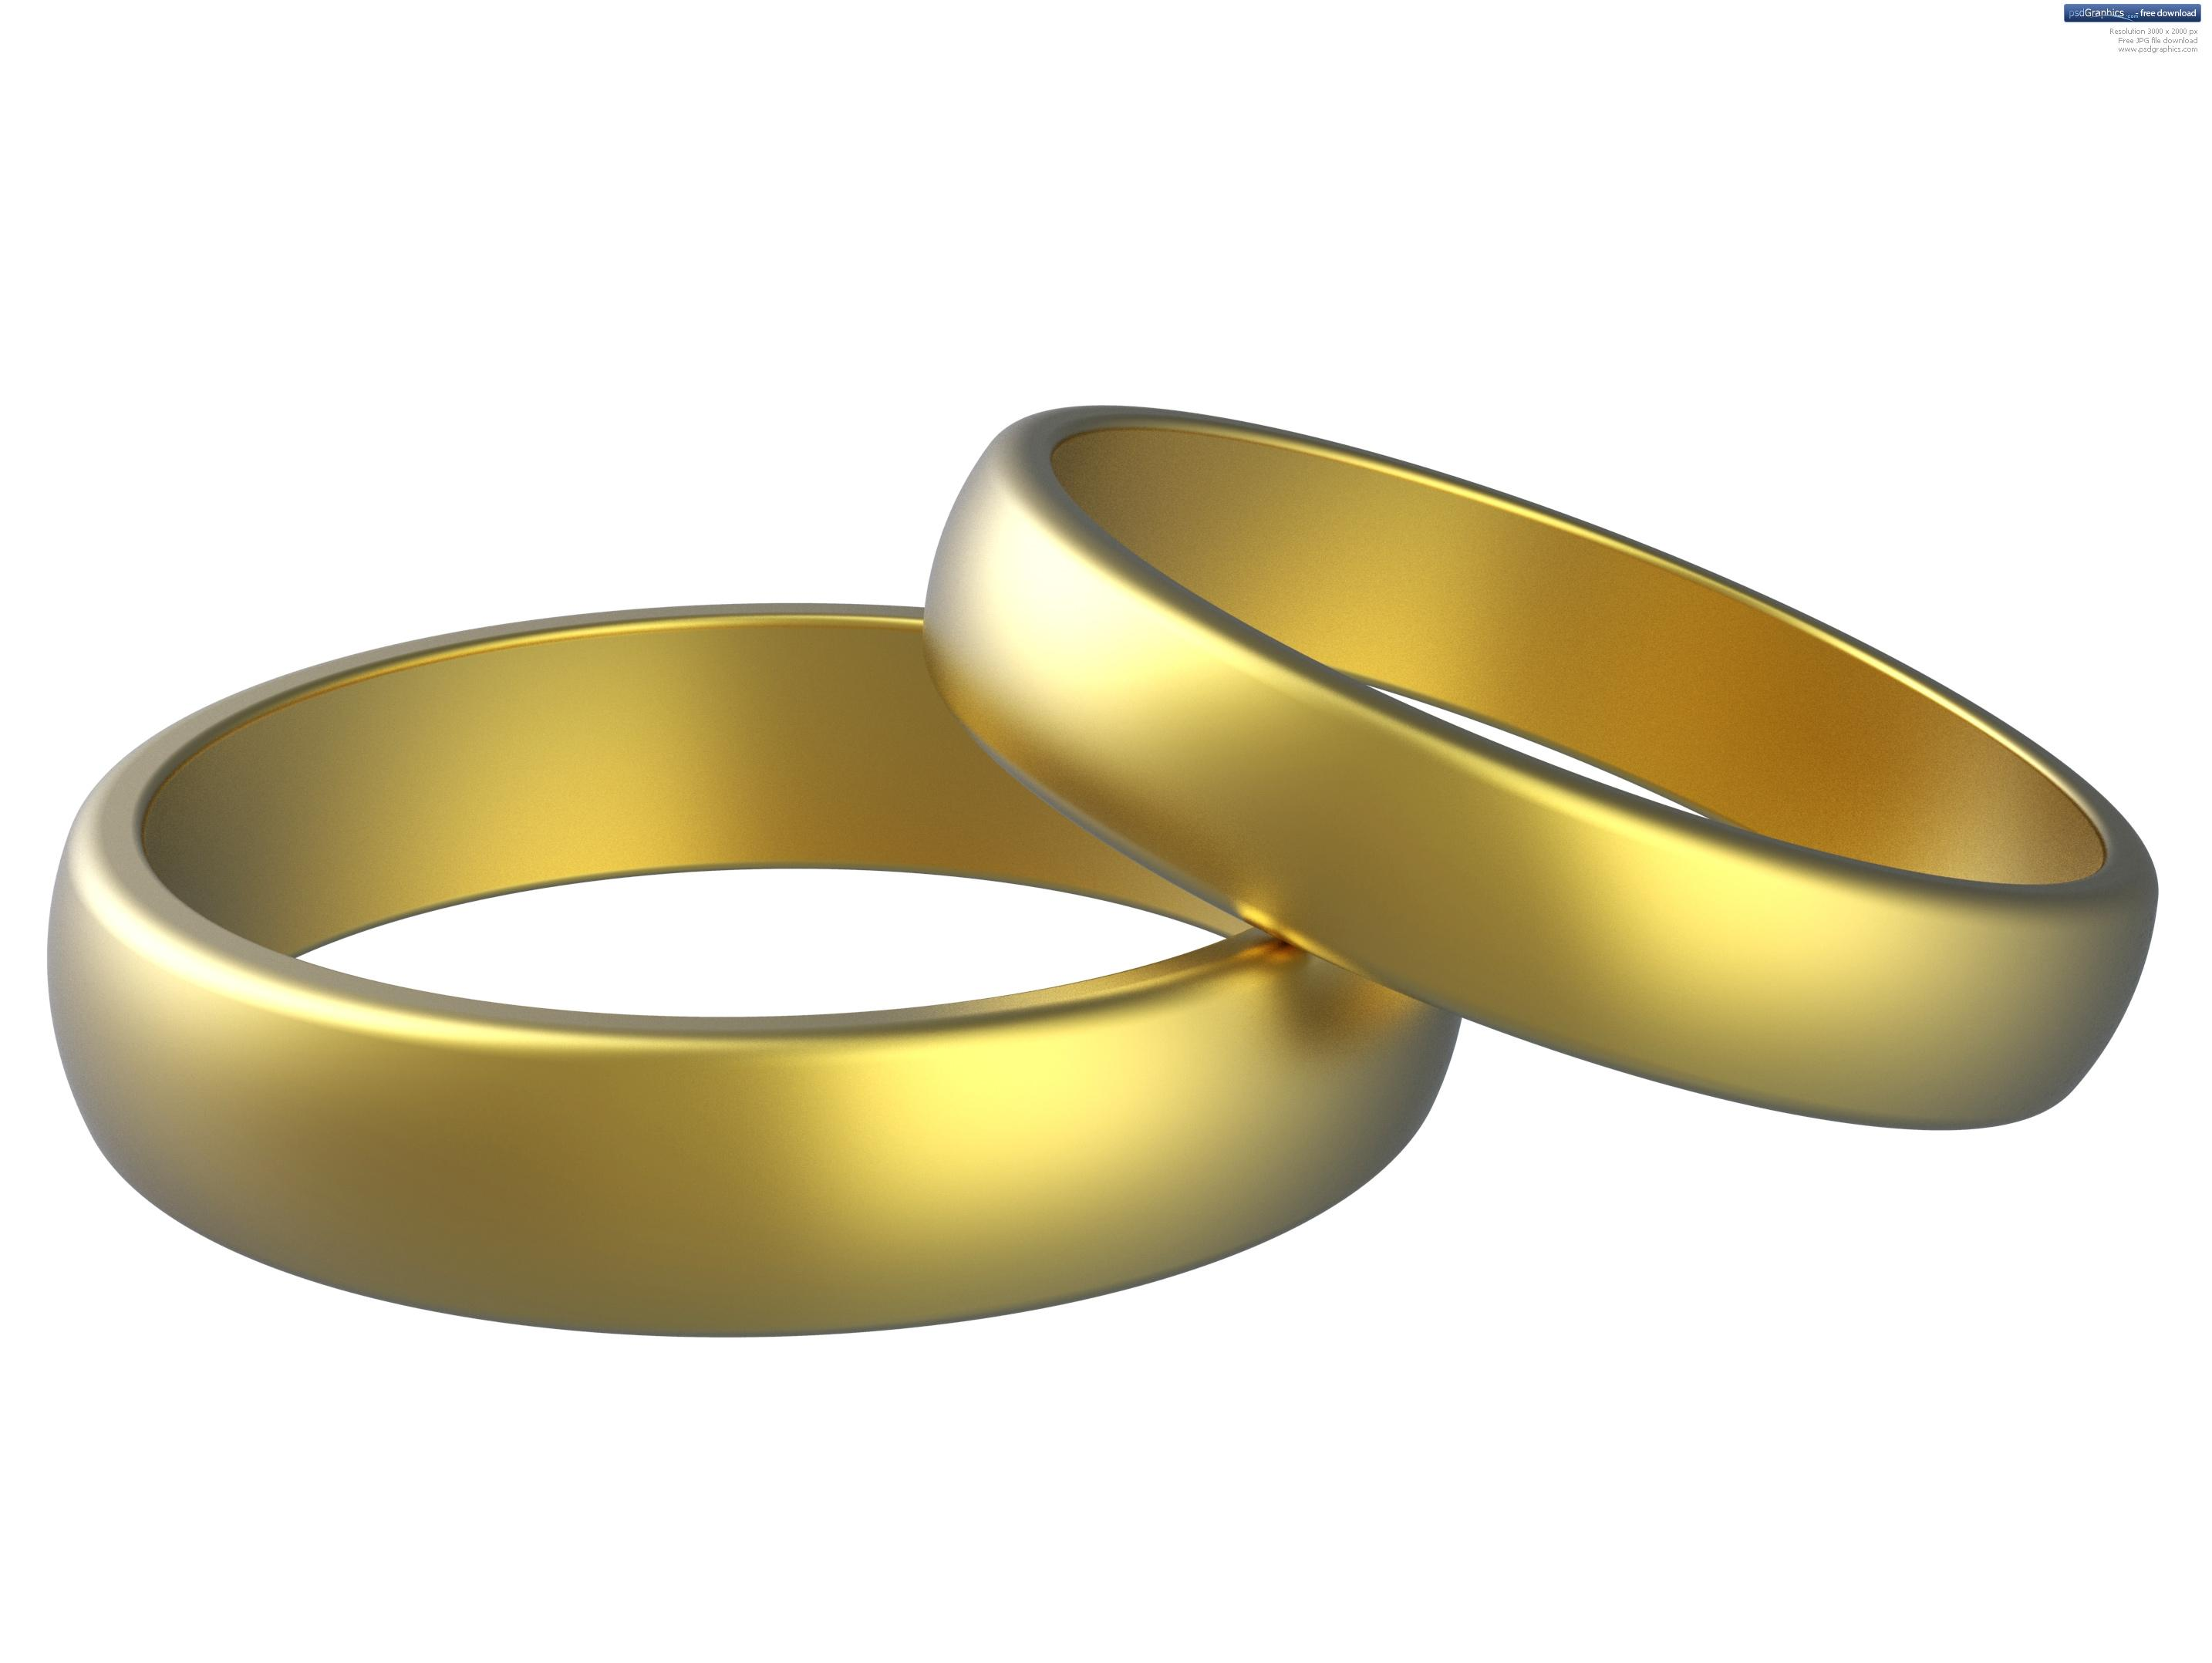 Golden Wedding Rings Clipart Free Image